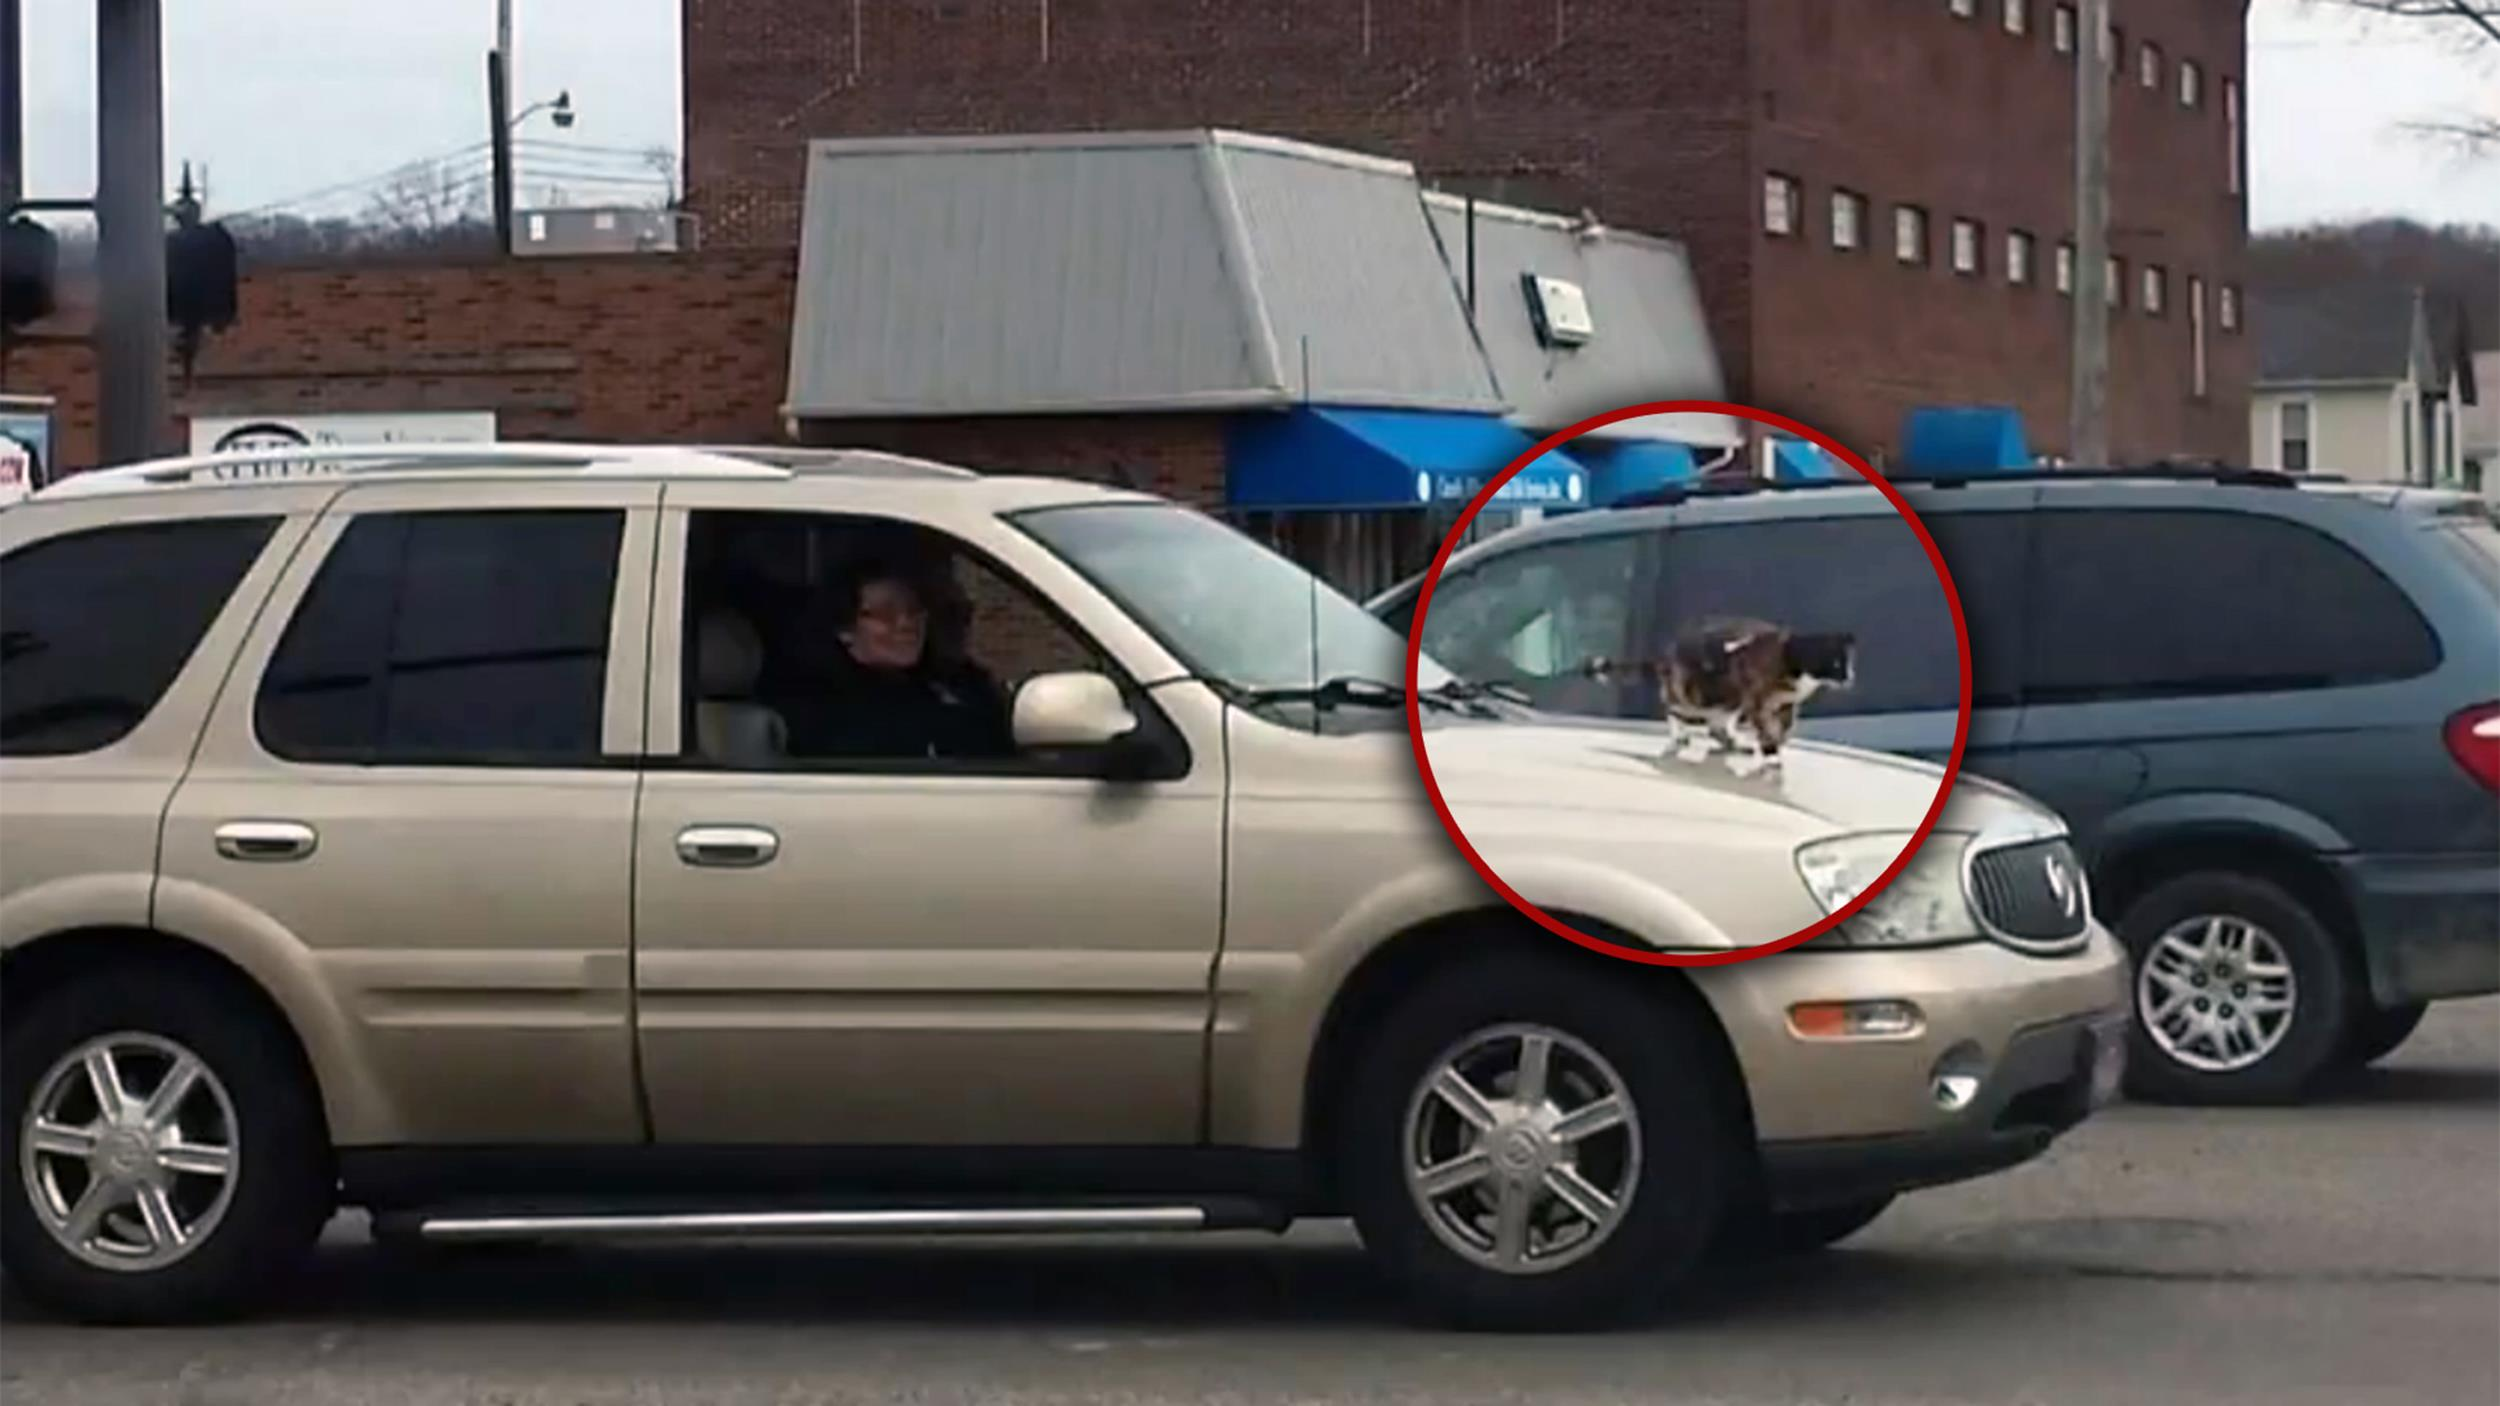 Car Exhaust Hood ~ Picture captures leashed cat riding on car hood in ohio